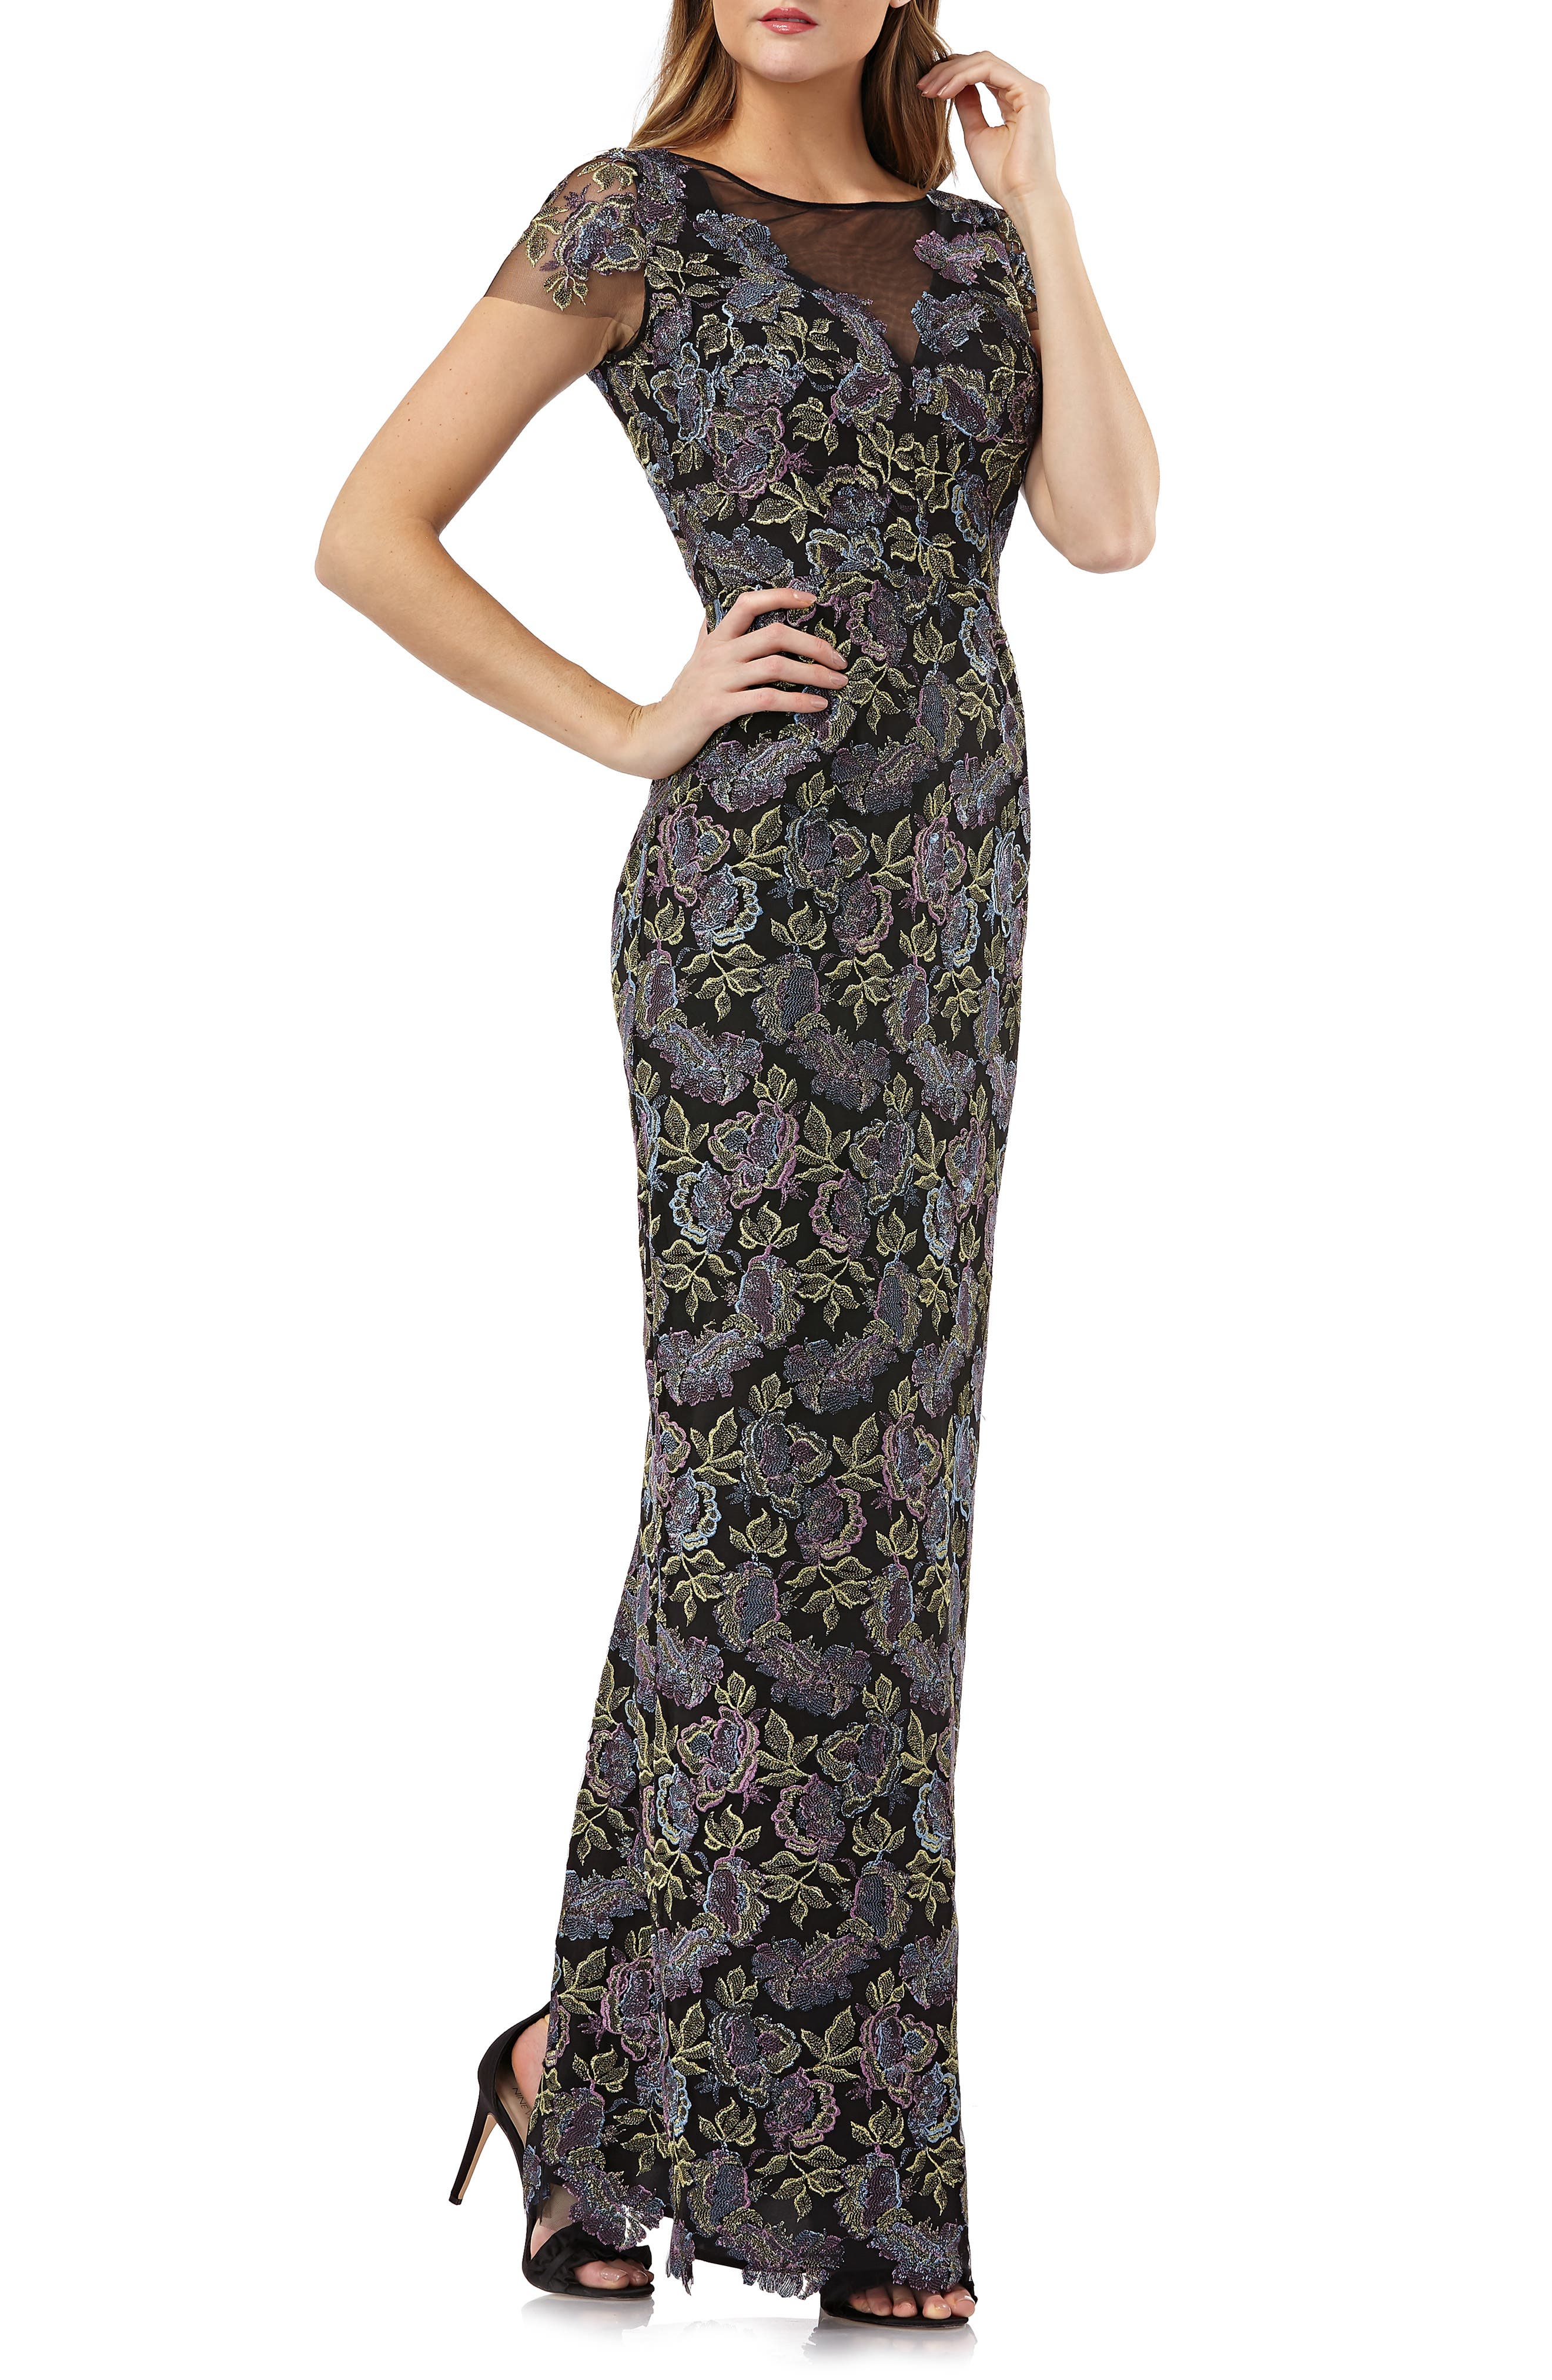 Js Collections Metallic Floral Embroidered Gown, Black